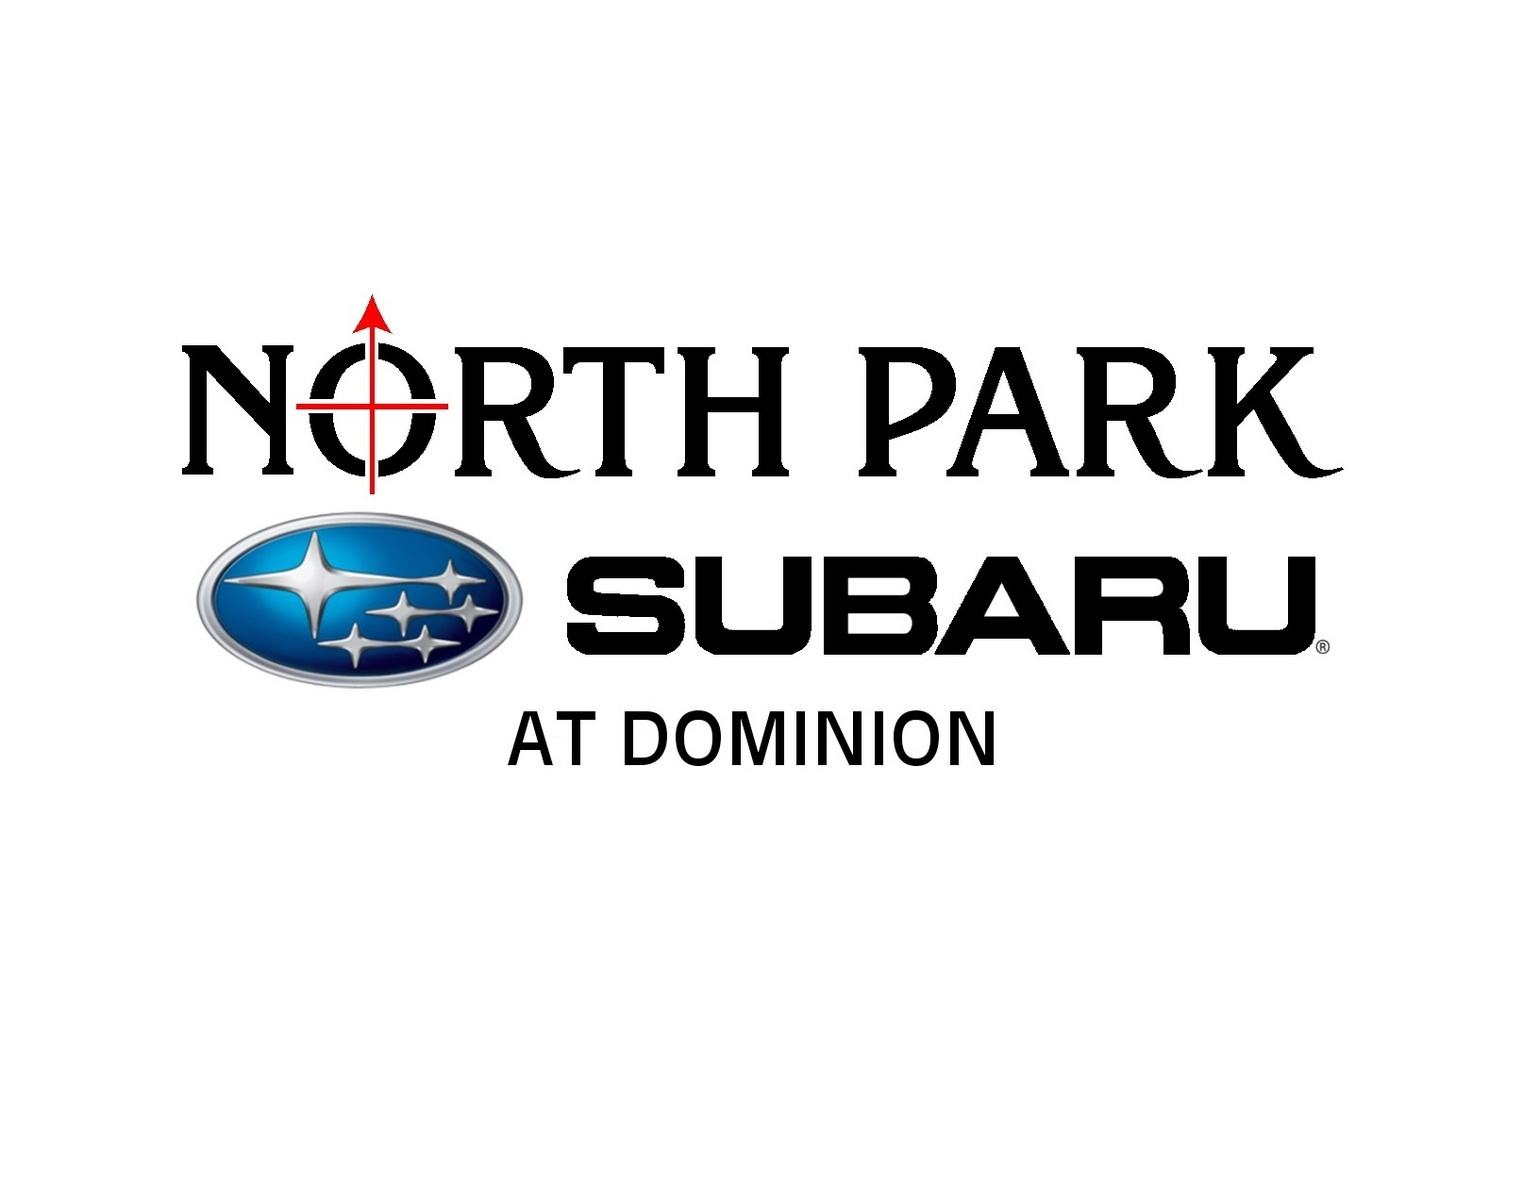 North Park Subaru Dominion San Antonio Tx Reviews